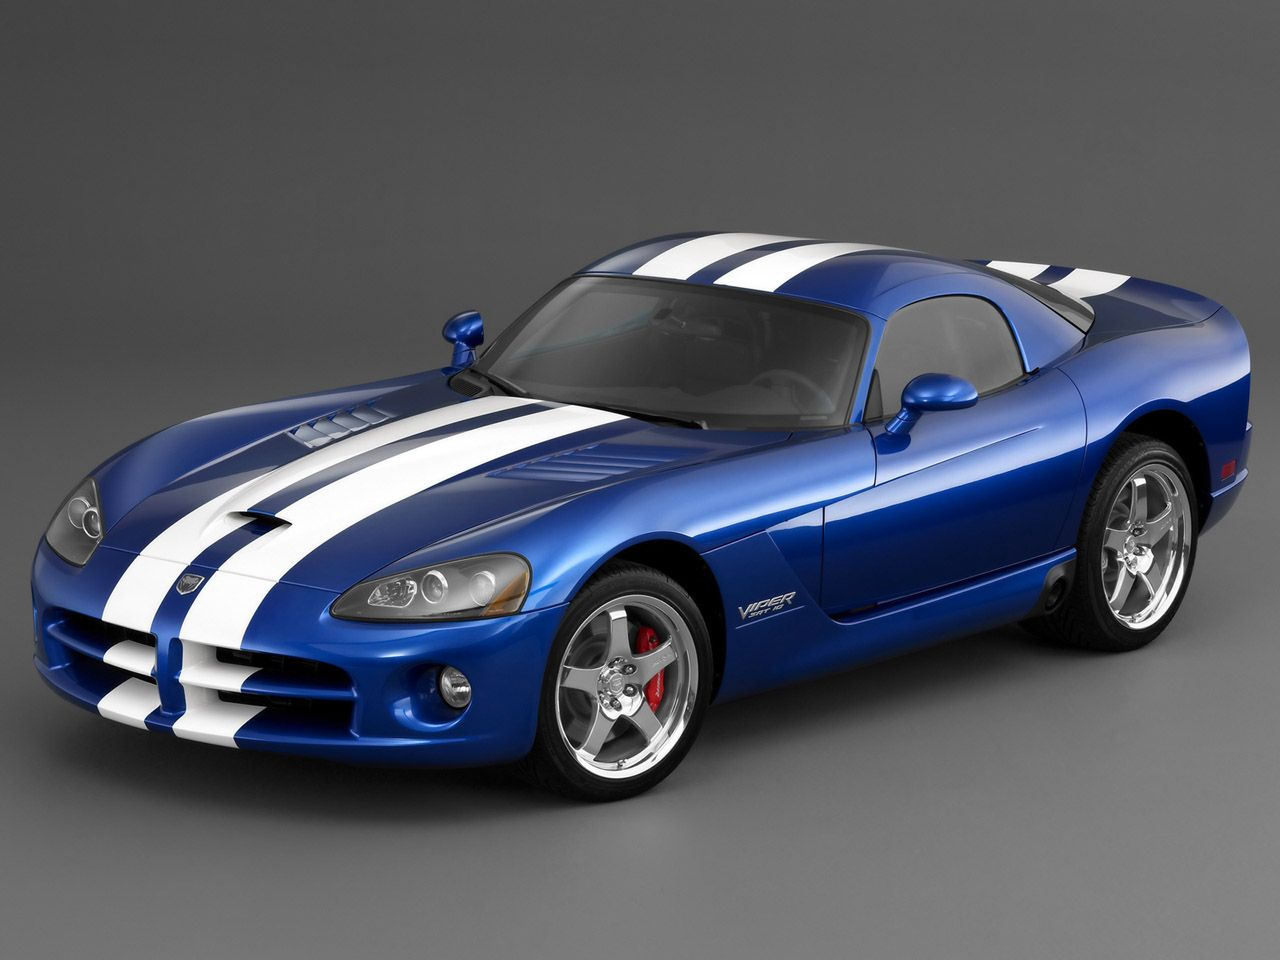 2006 Dodge Viper SRT10 Coupe Picture